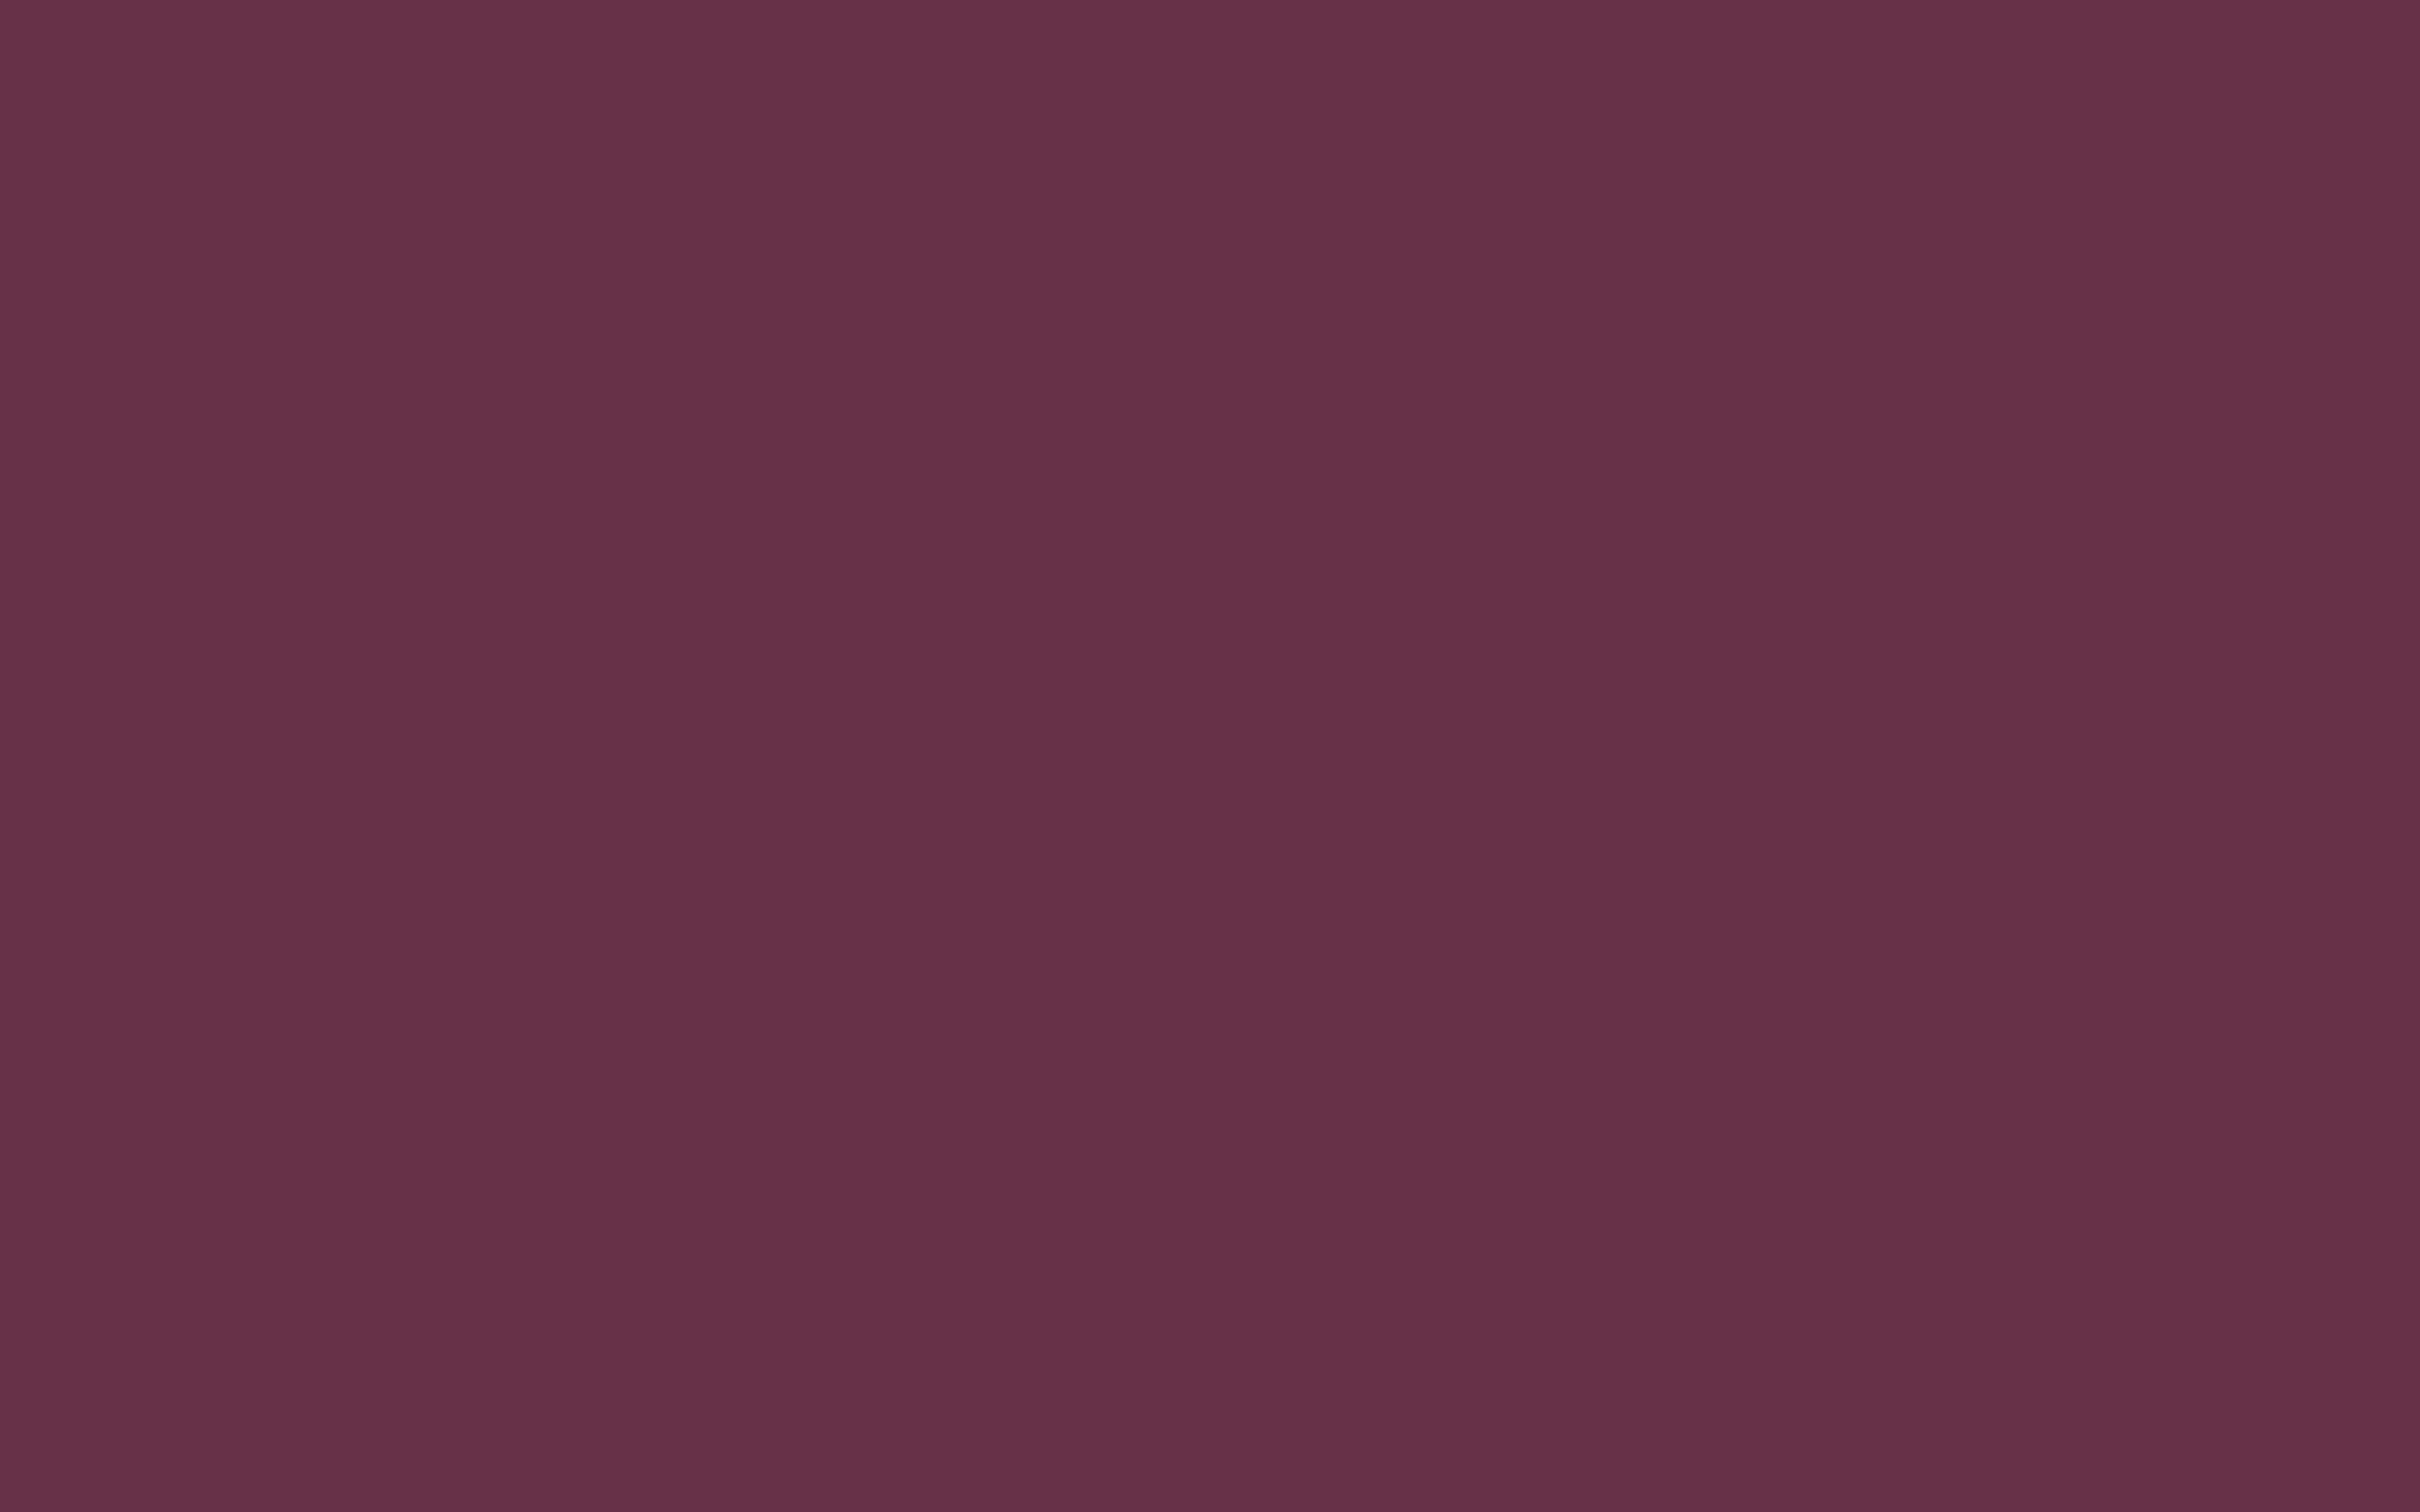 2560x1600 Old Mauve Solid Color Background